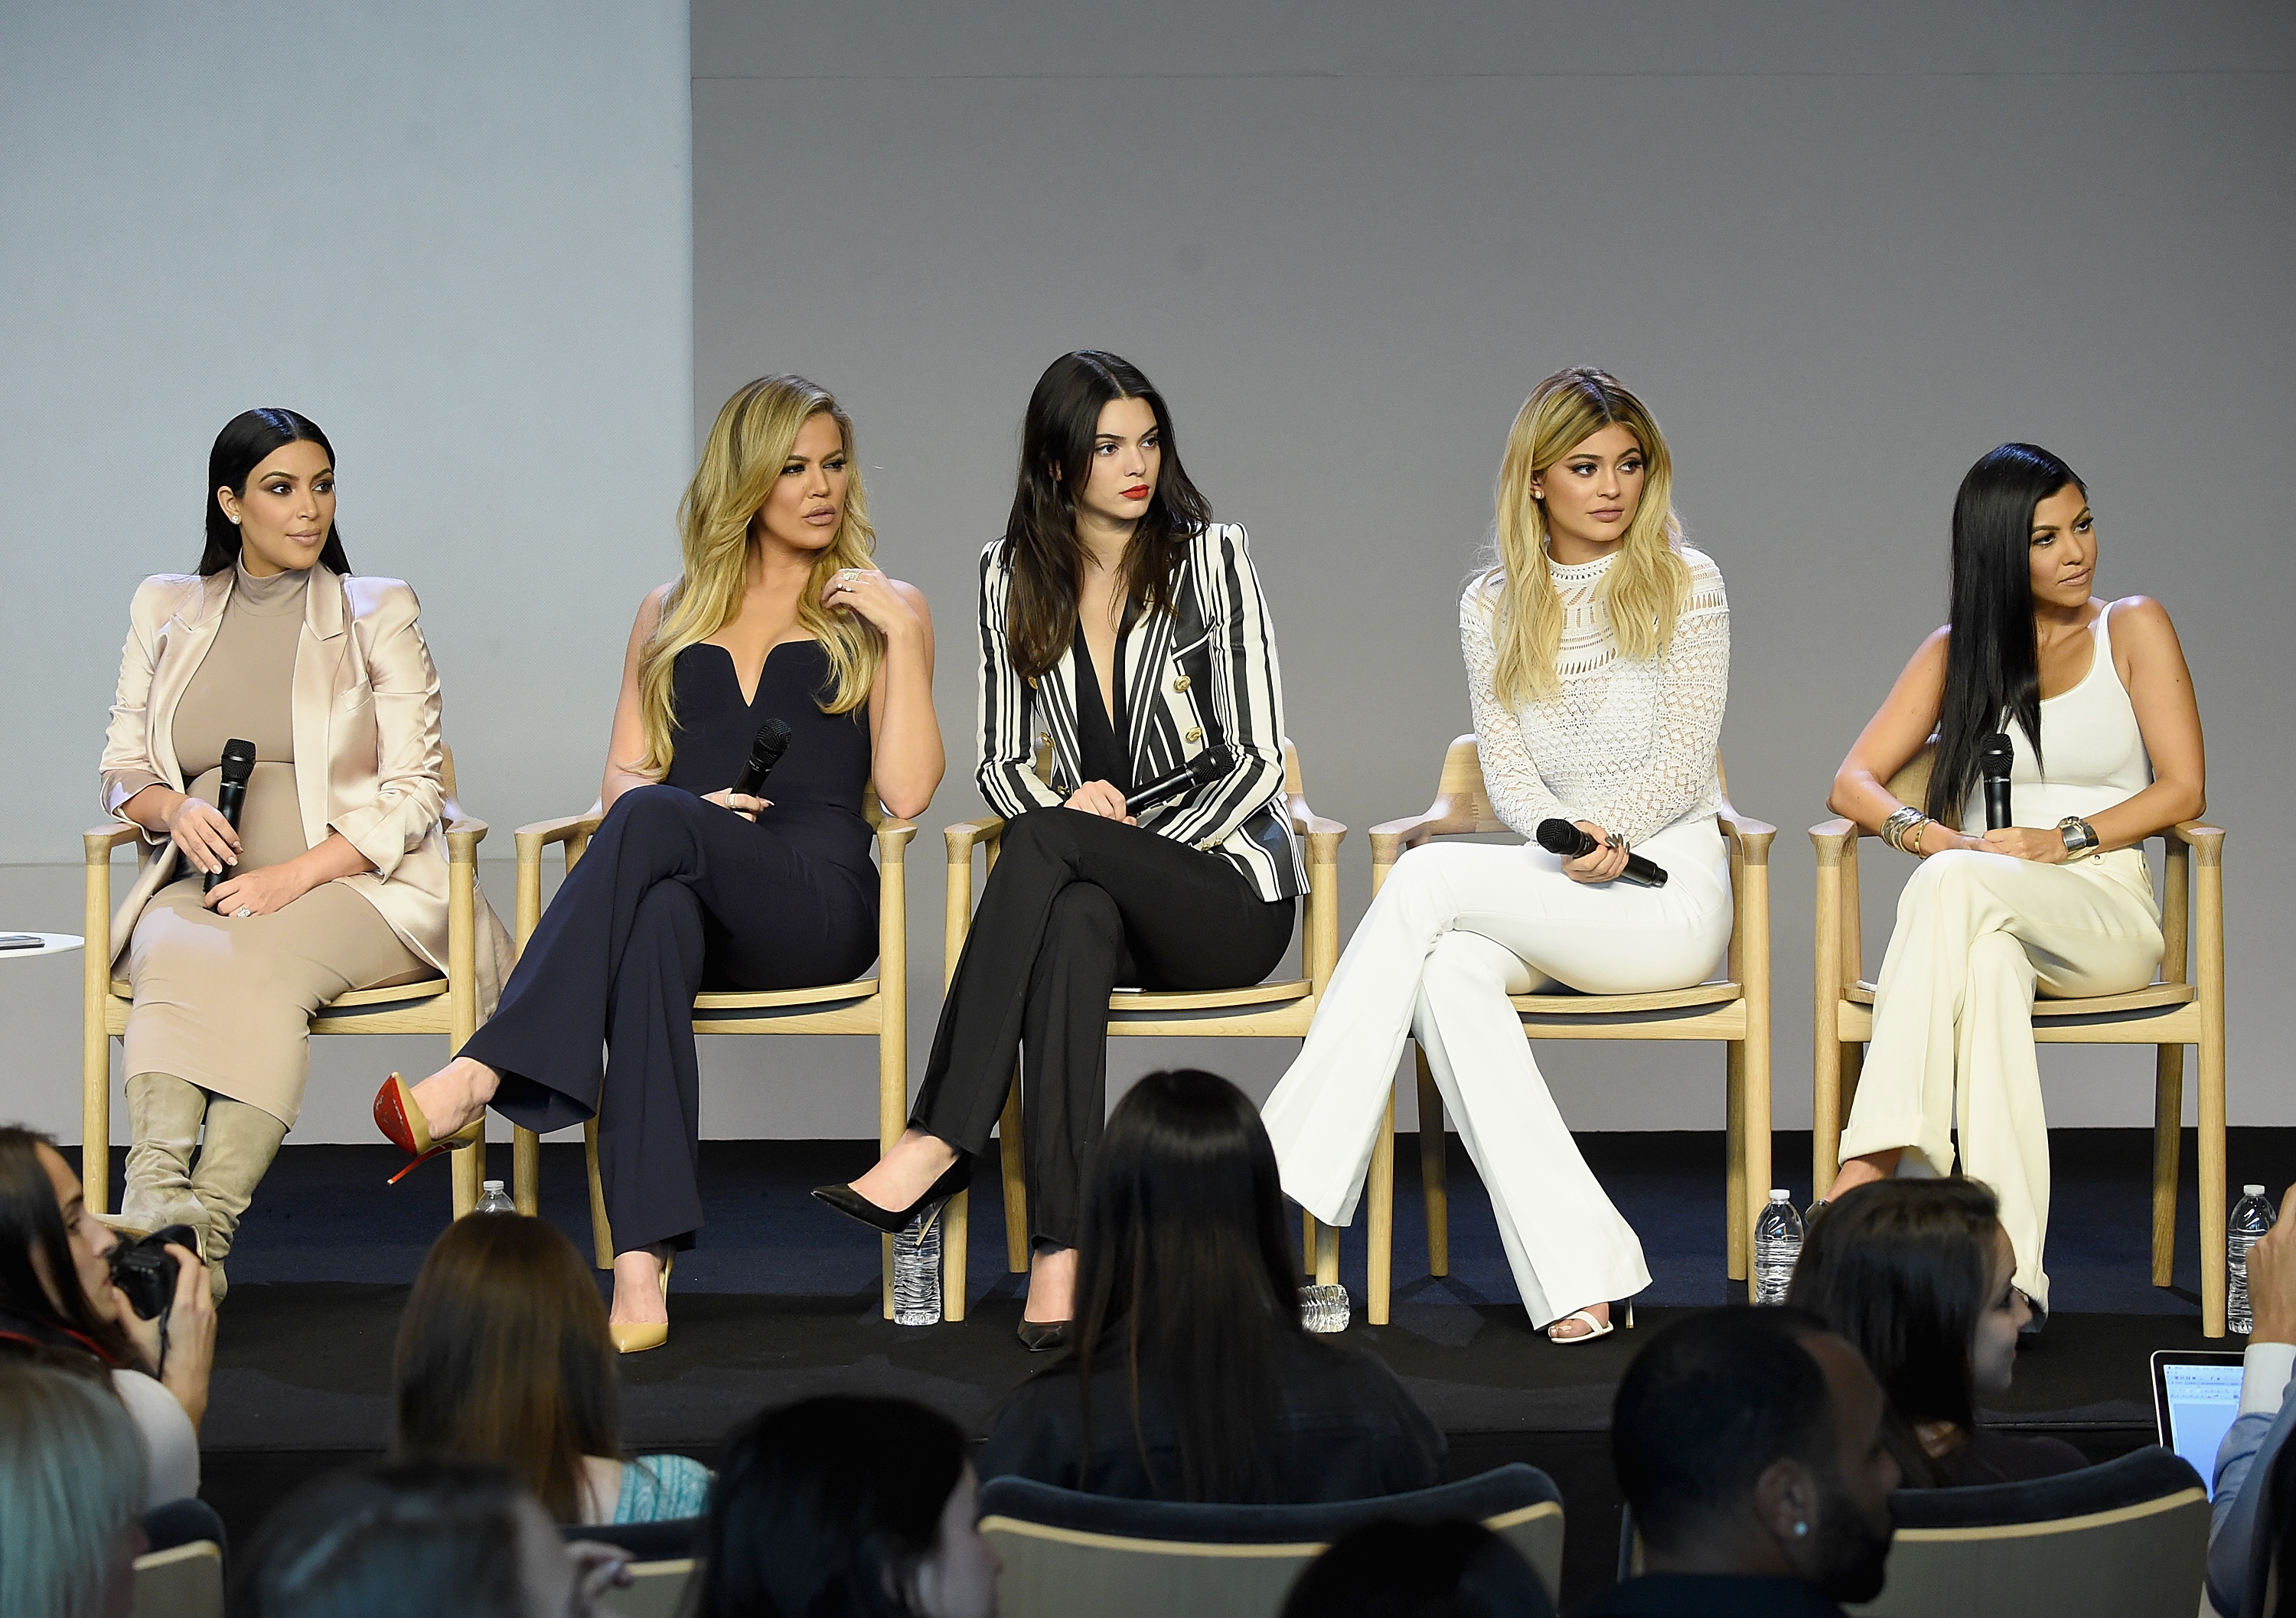 Kim Kardashian, Khloé Kardashian , Kendall Jenner, Kylie Jenner and Kourtney Kardashian attend Apple Store Soho Presents Meet The Developers at Apple Store Soho on September 14, 2015 in New York City.